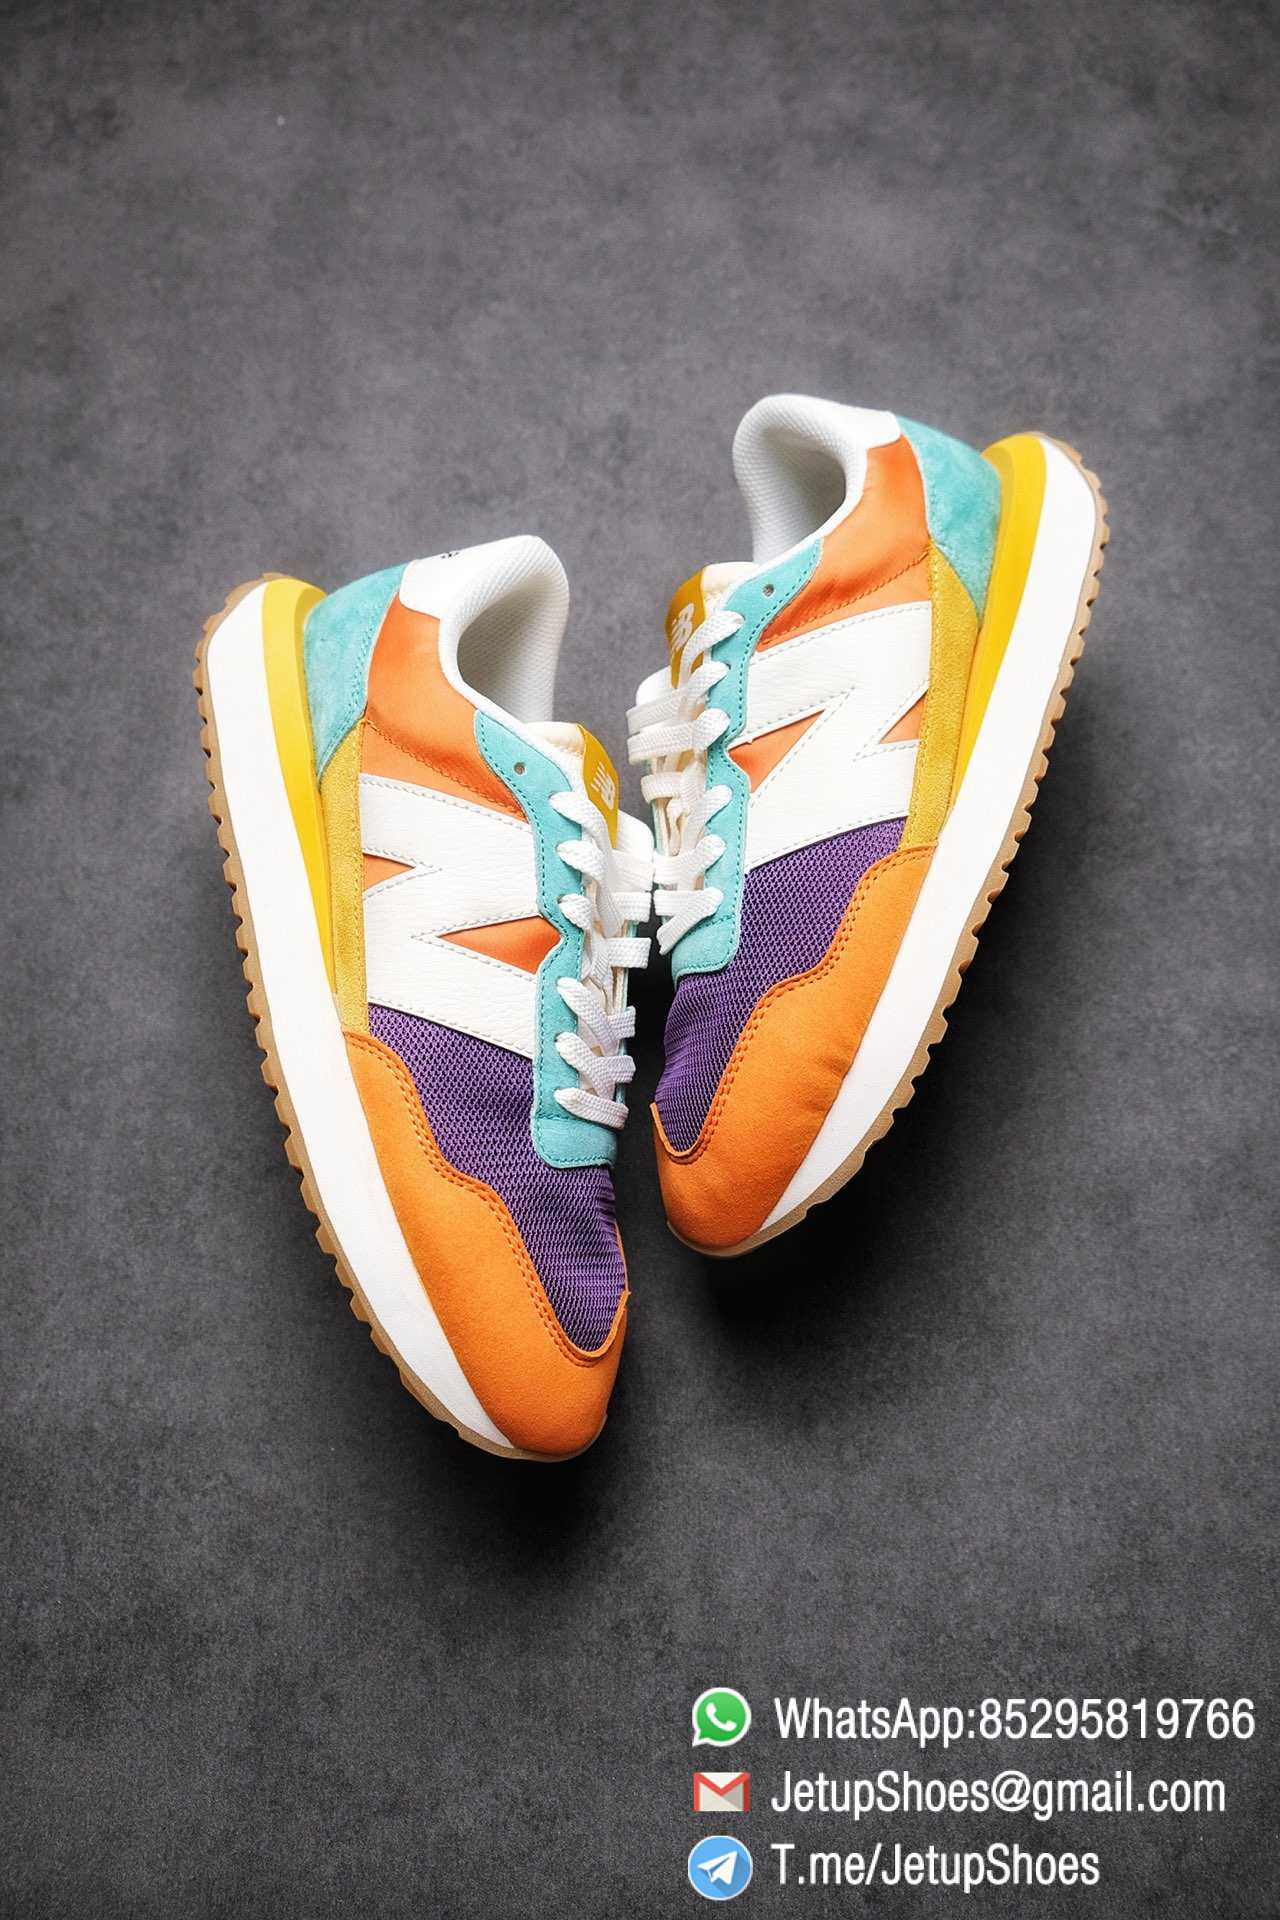 Best Replica New Balance 237 Yellow Blue Orange Suede Purple Mesh Stitching SKU MS237LB2 High Quality Fake Multi Color Running Shoes 03